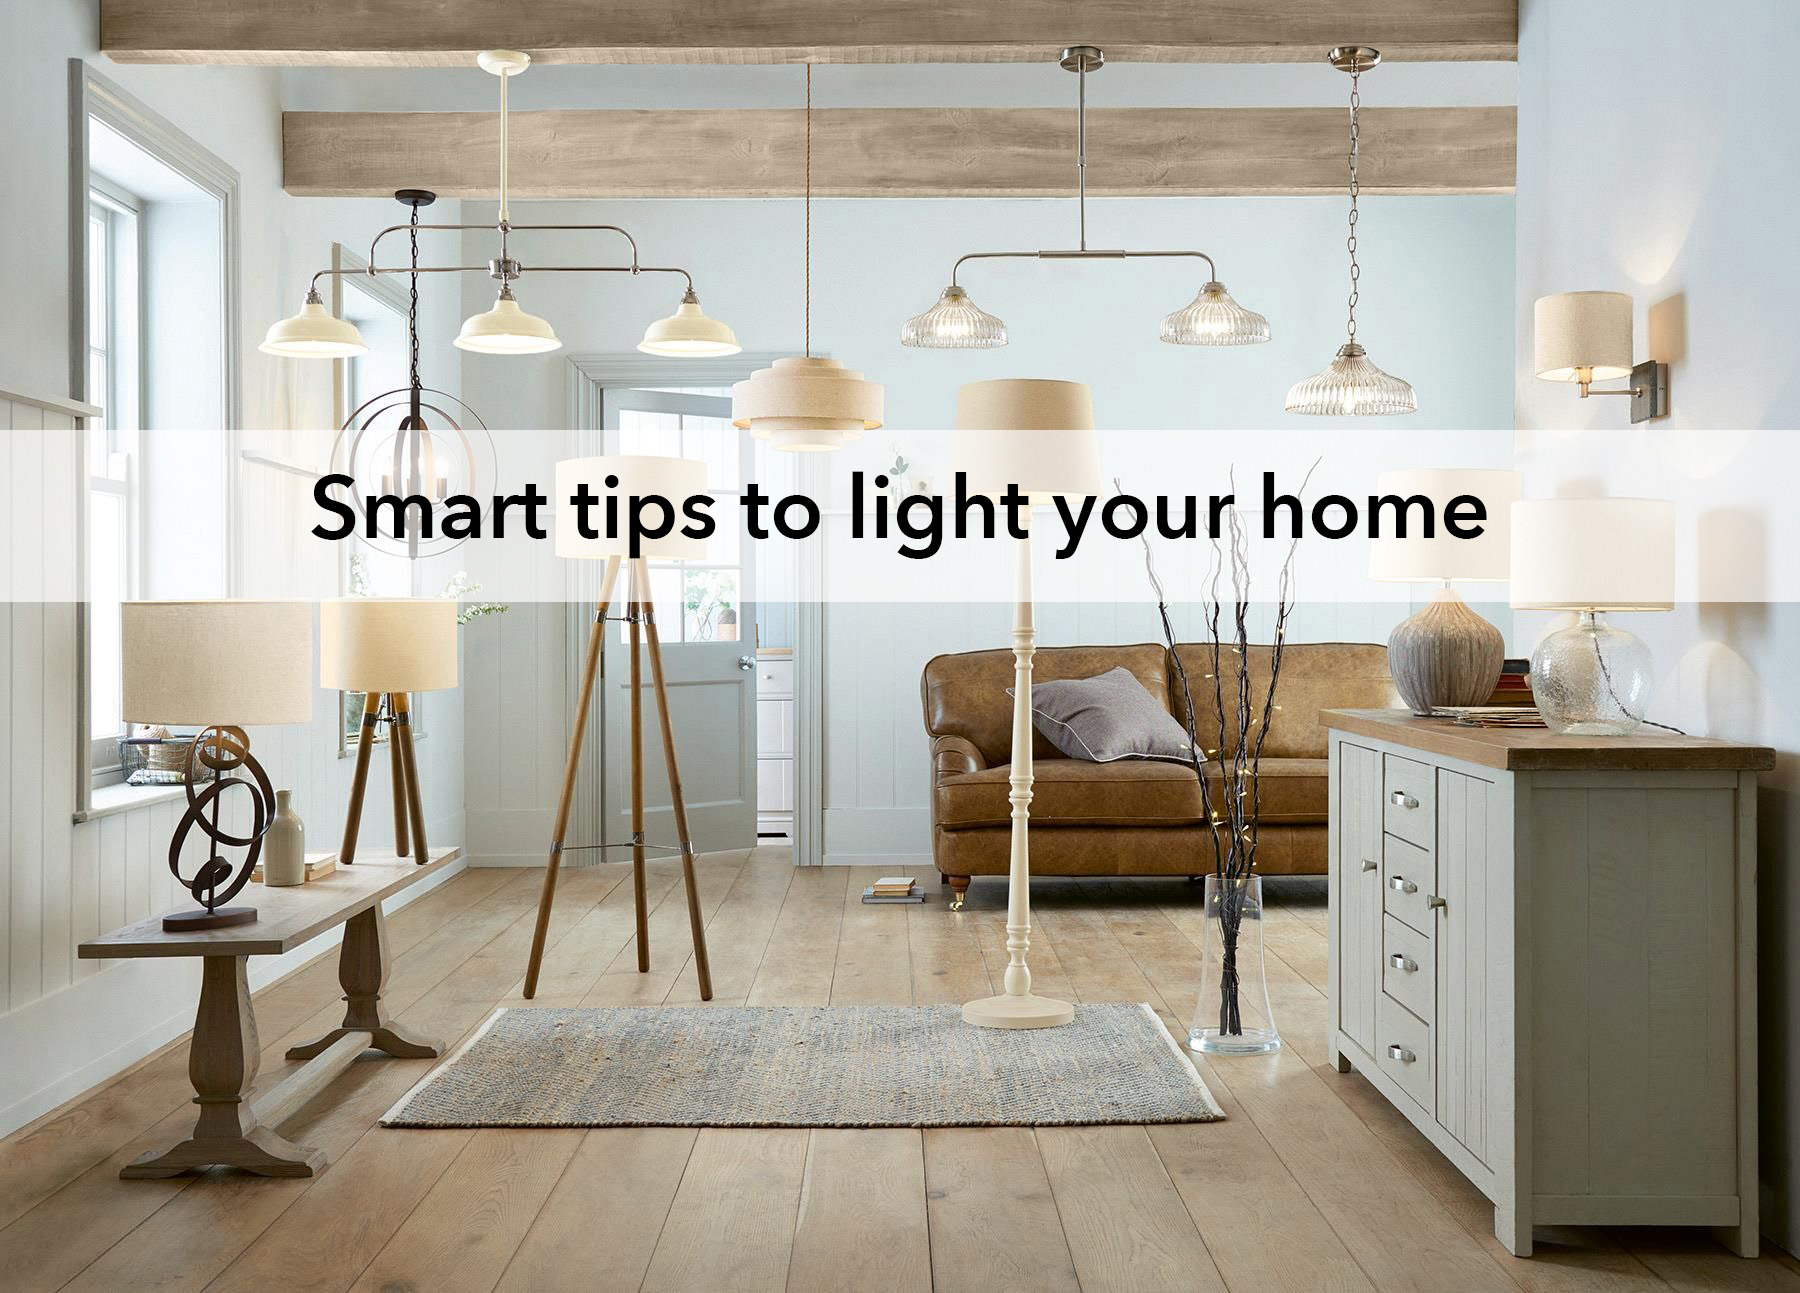 Smart tips to light your home